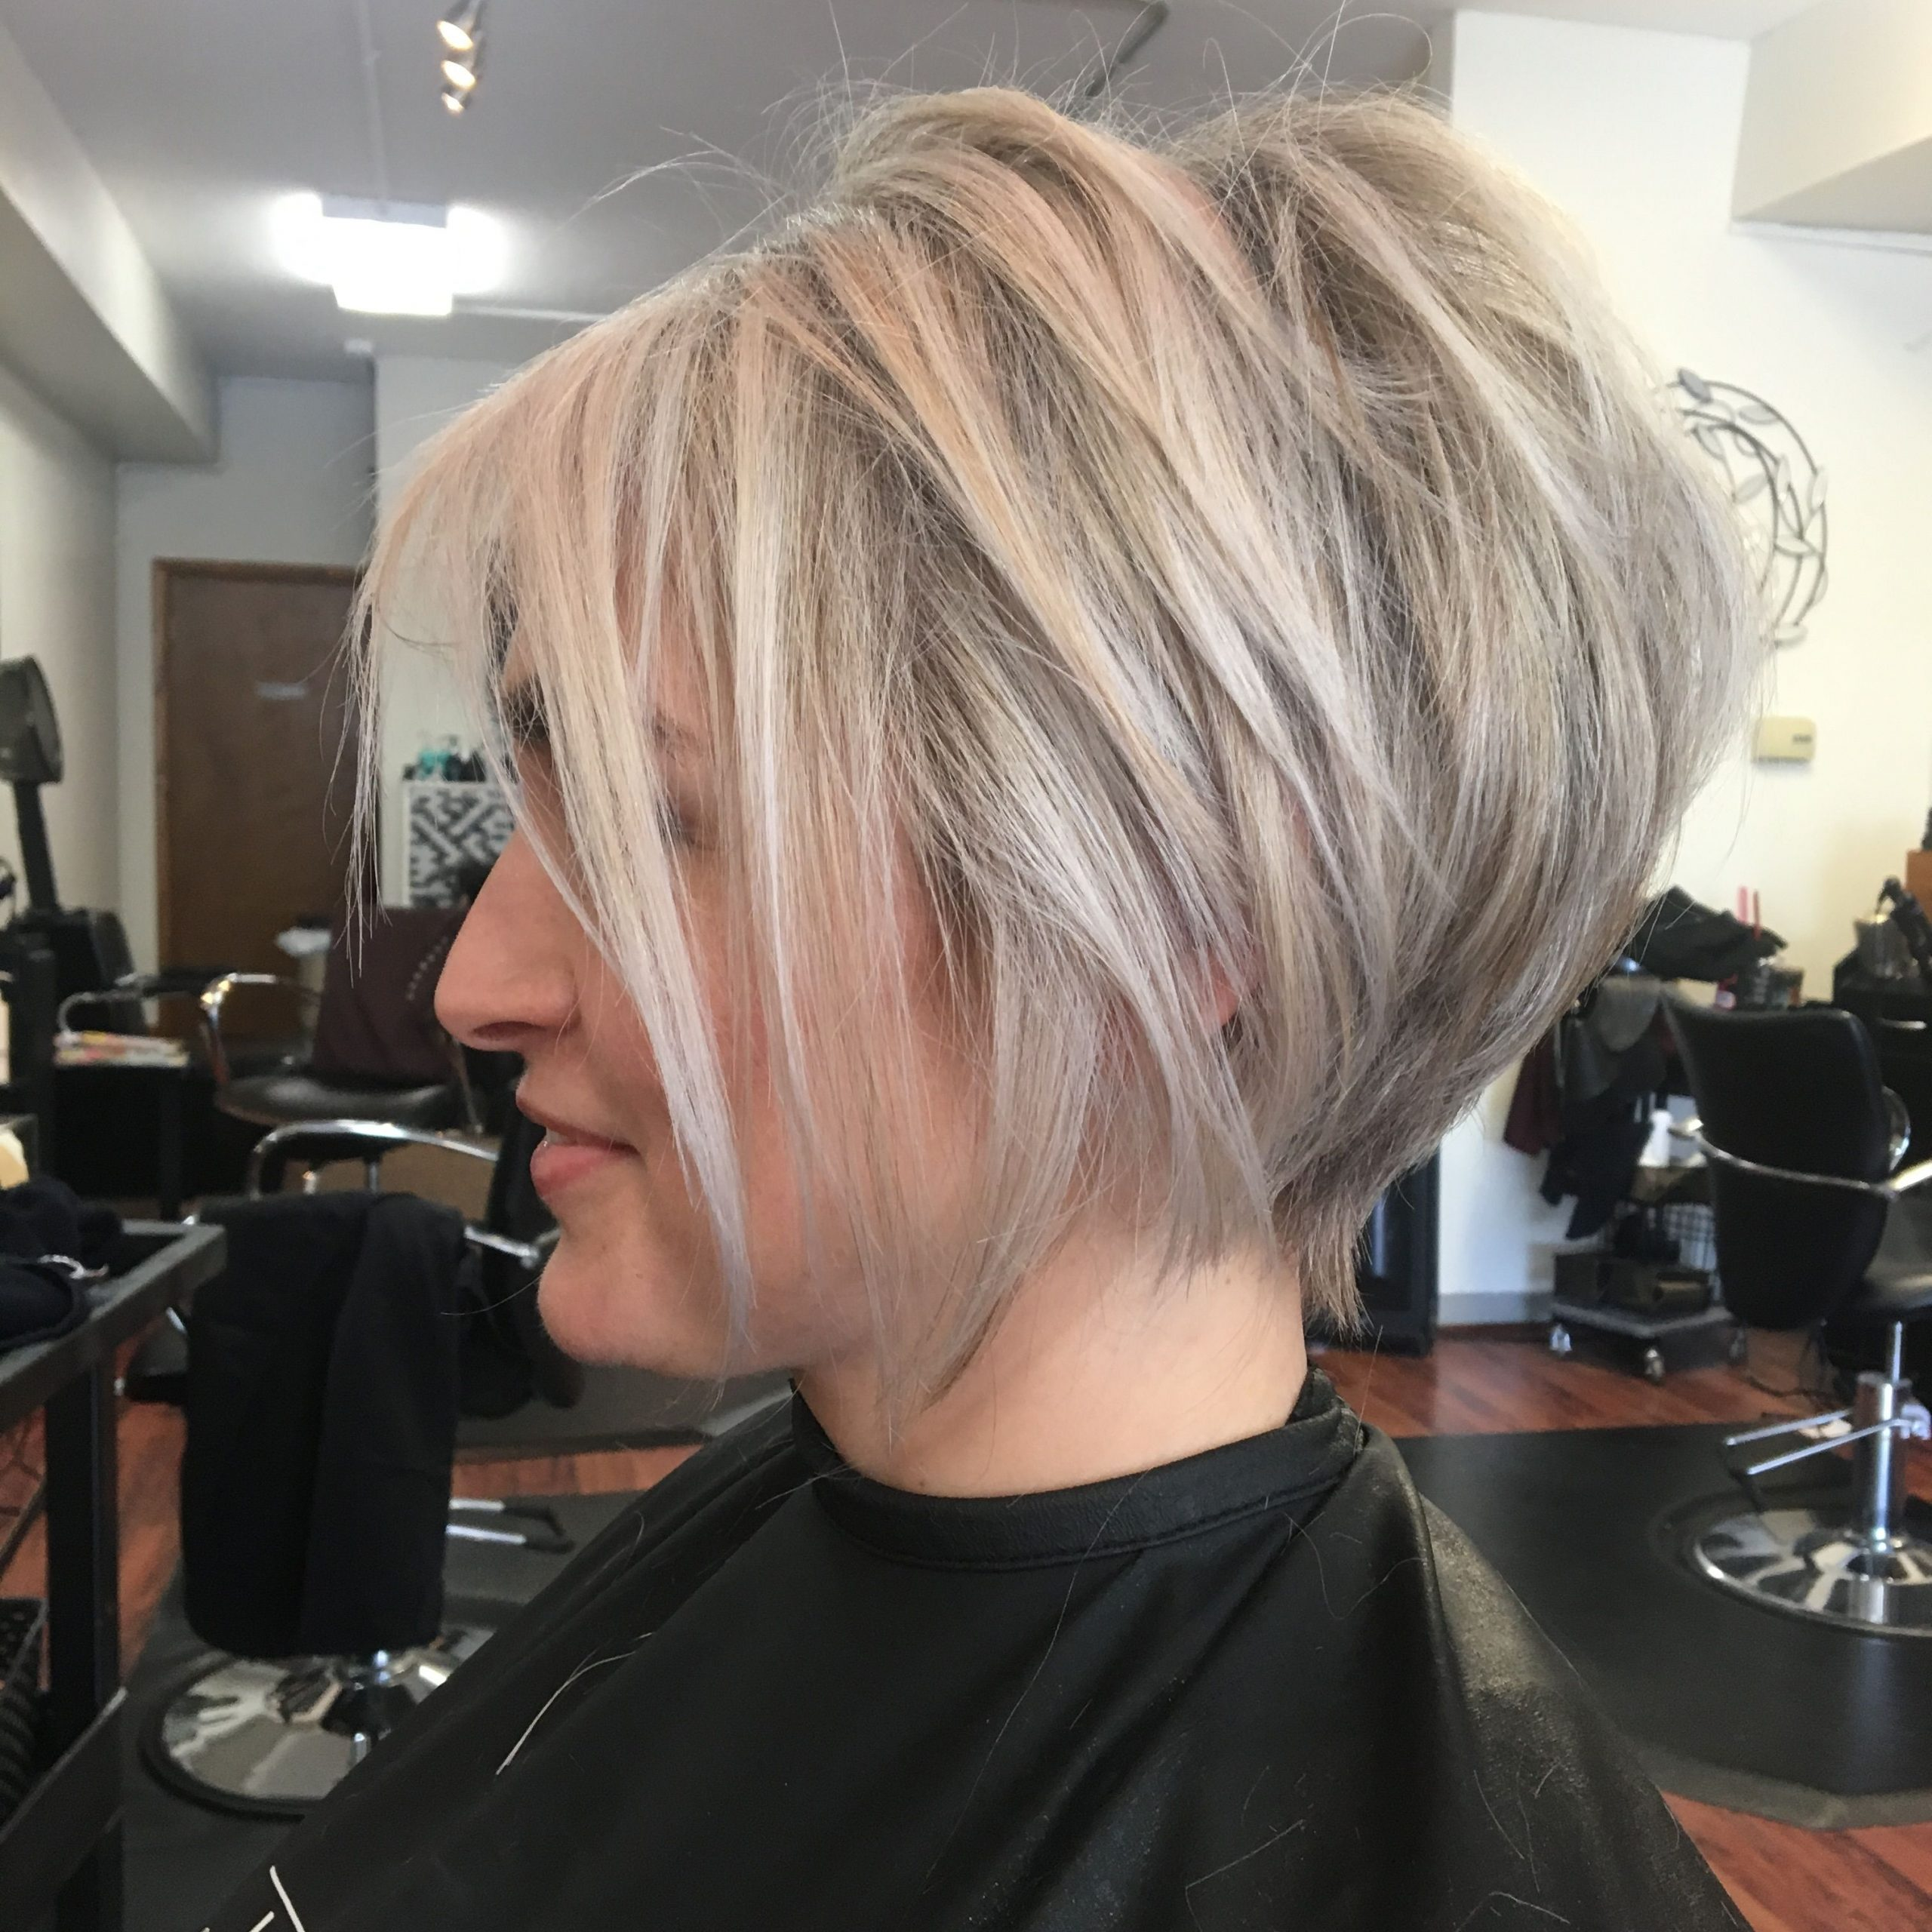 Pin On For The ❤ Of Beauty Within Popular Blonde Undercut Bob Hairstyles (View 15 of 20)